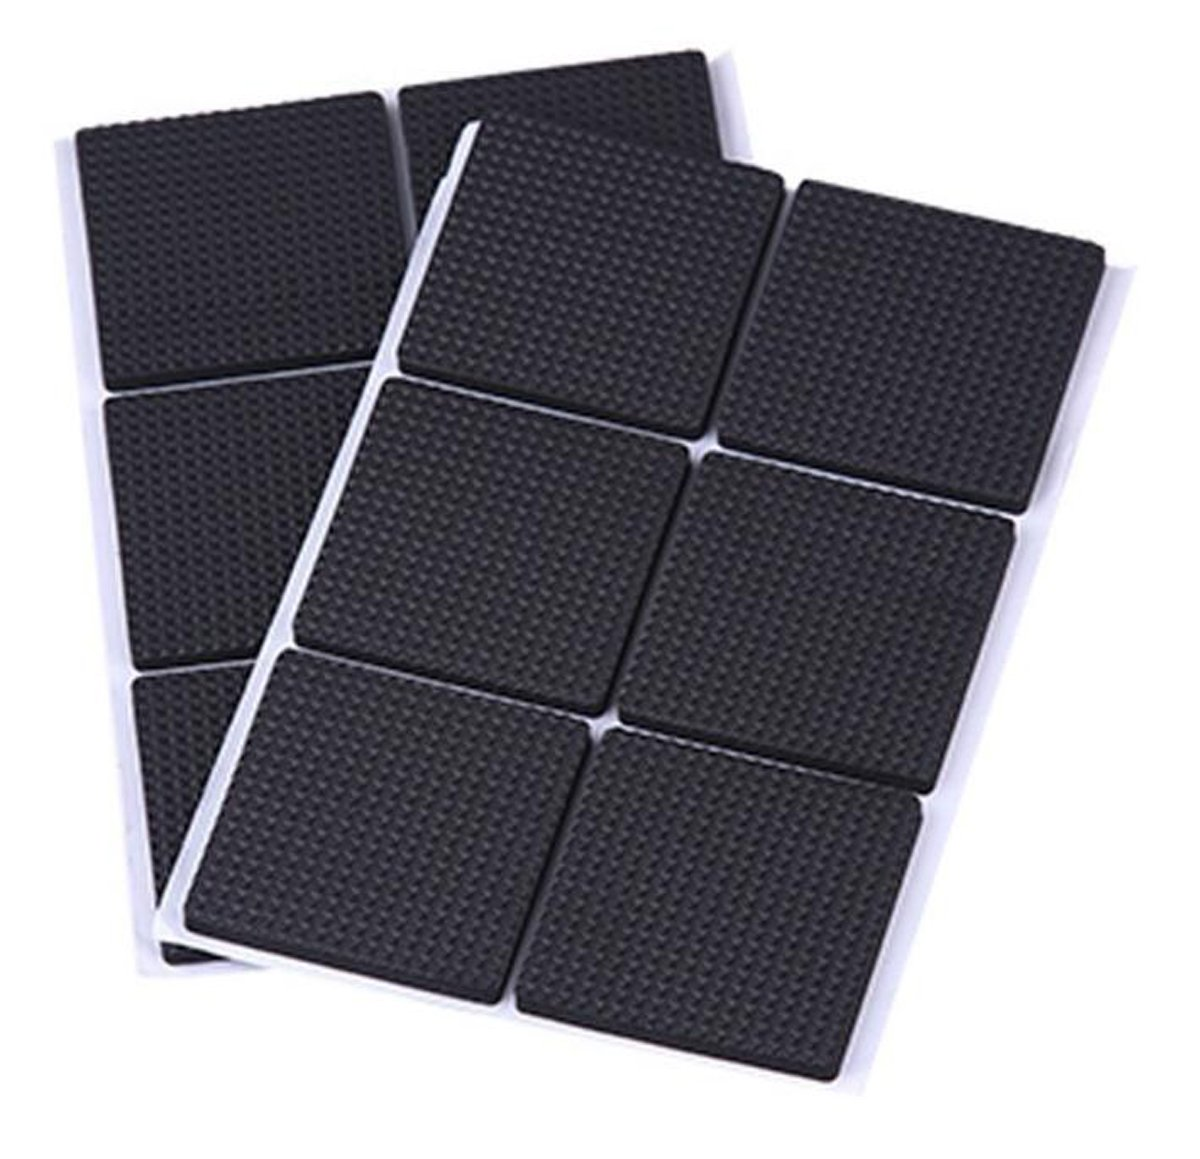 ASTRQLE 3Set Black Multi-functional Self Stick Adhesive Thickening Silicone Rubber Non-slip Table Mats Furniture Pads Floor Noise Dampening Bumper Buffer Protection Chair Pad (12pcs quadrate)